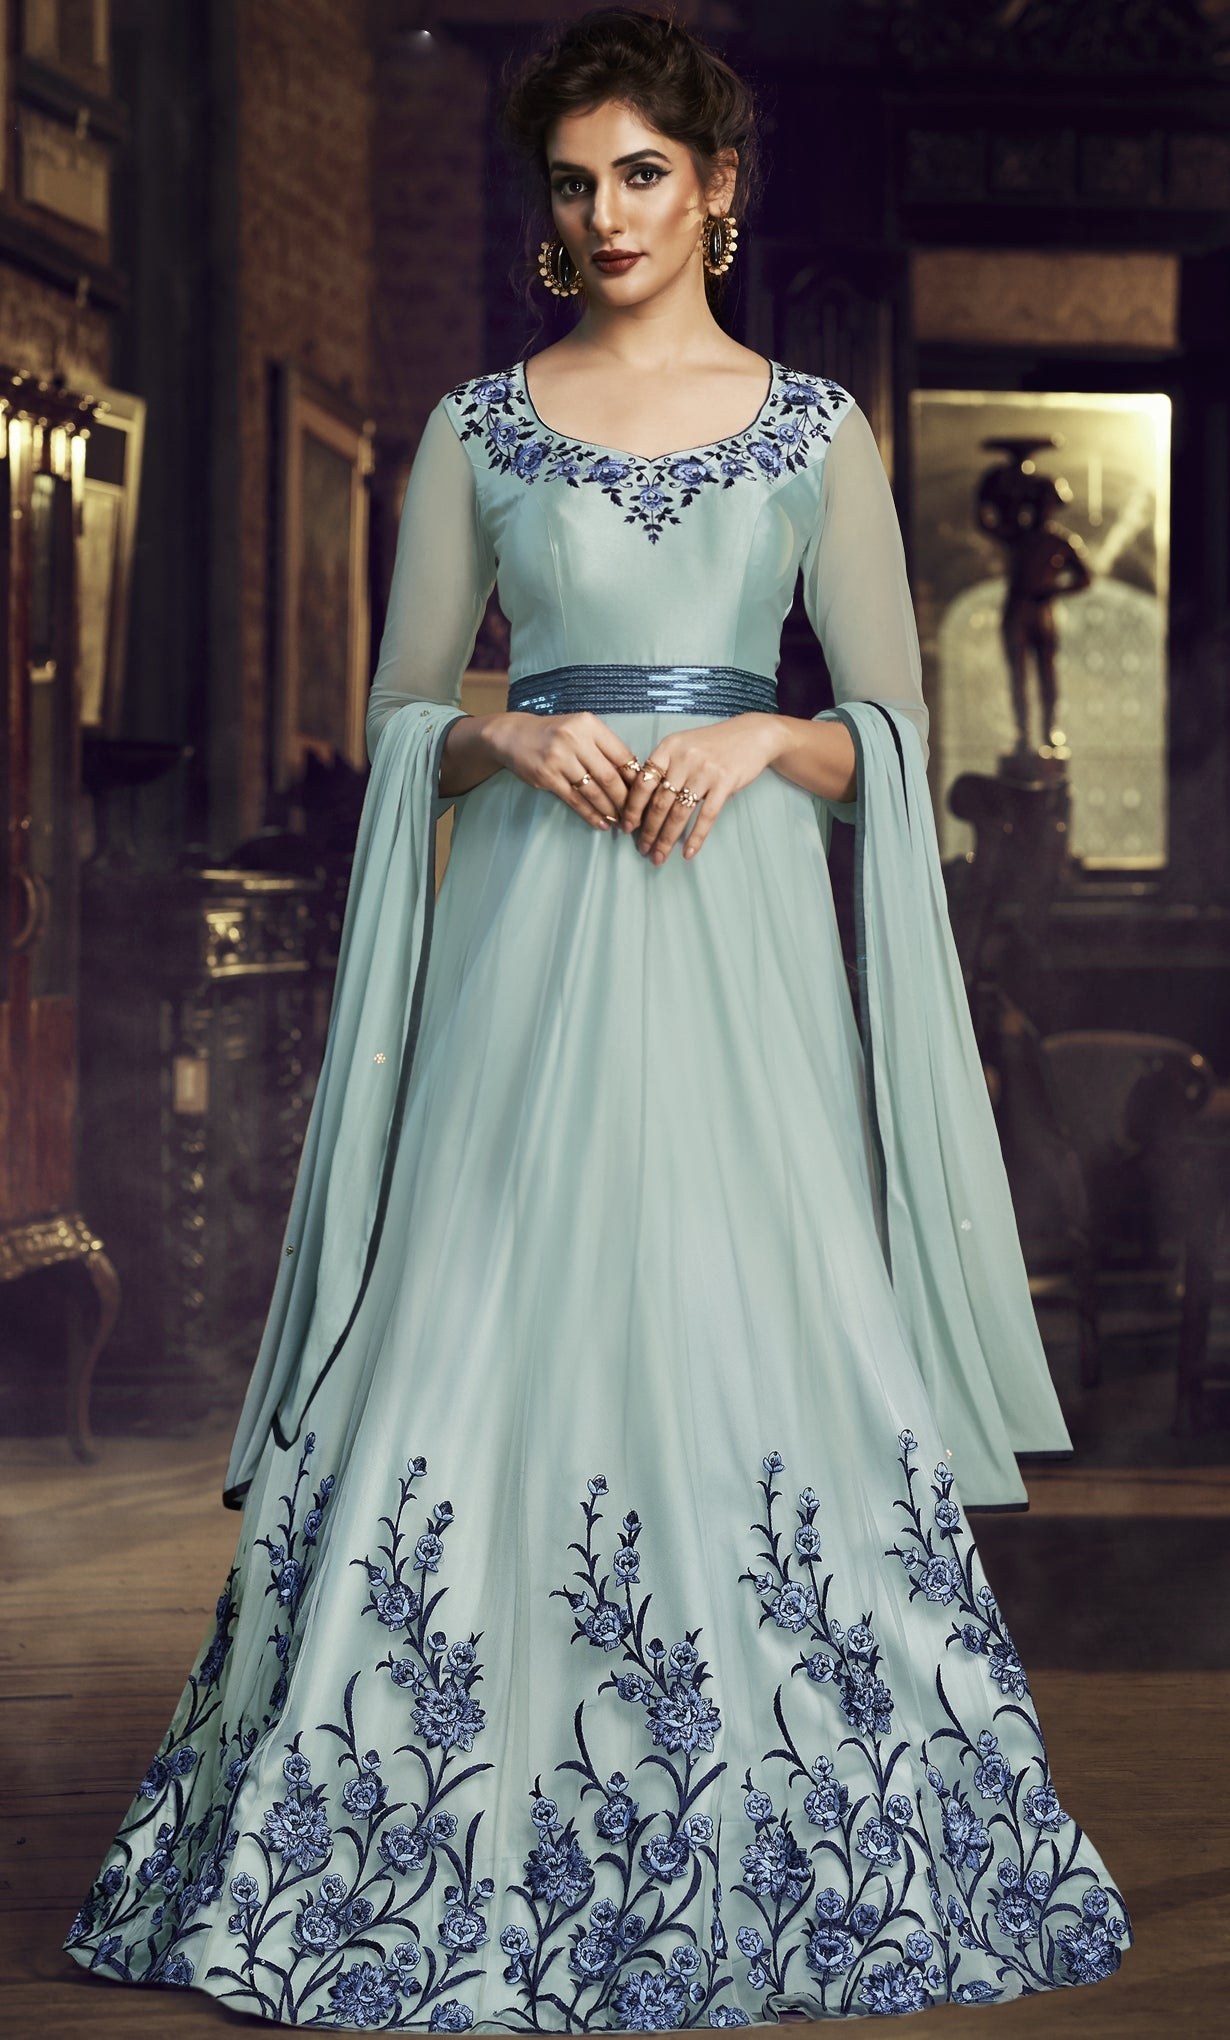 Sky Blue Net Embroidered Party Gown Indian Girls Suits Online Indian Dresses,Elegant Sophisticated Wedding Mehndi Elegant Sophisticated Wedding Bridal Dresses 2020